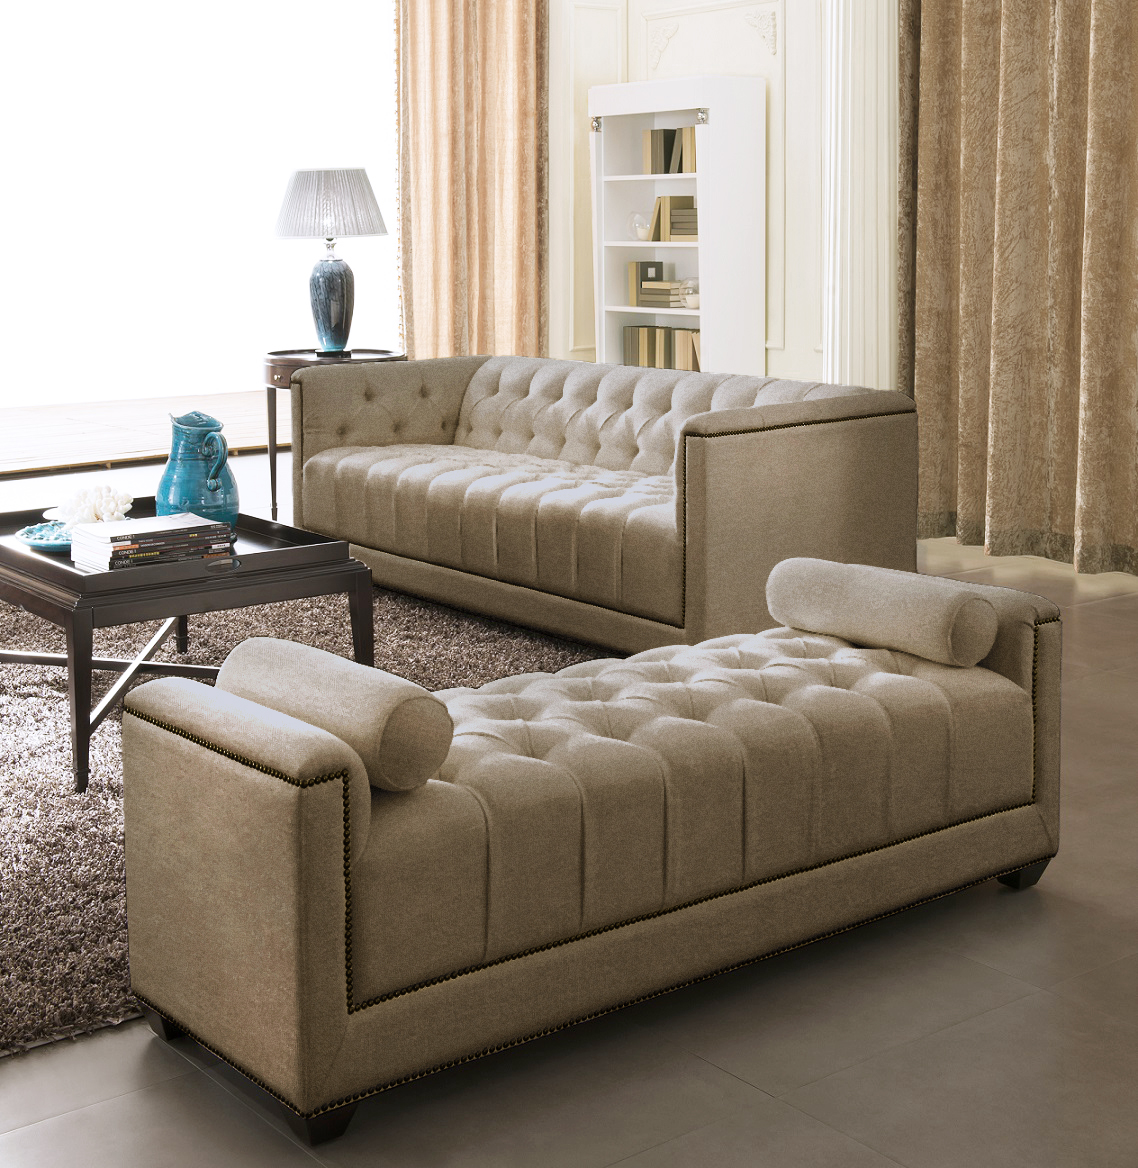 Modern Living Room Sofa Sets 1138 x 1168